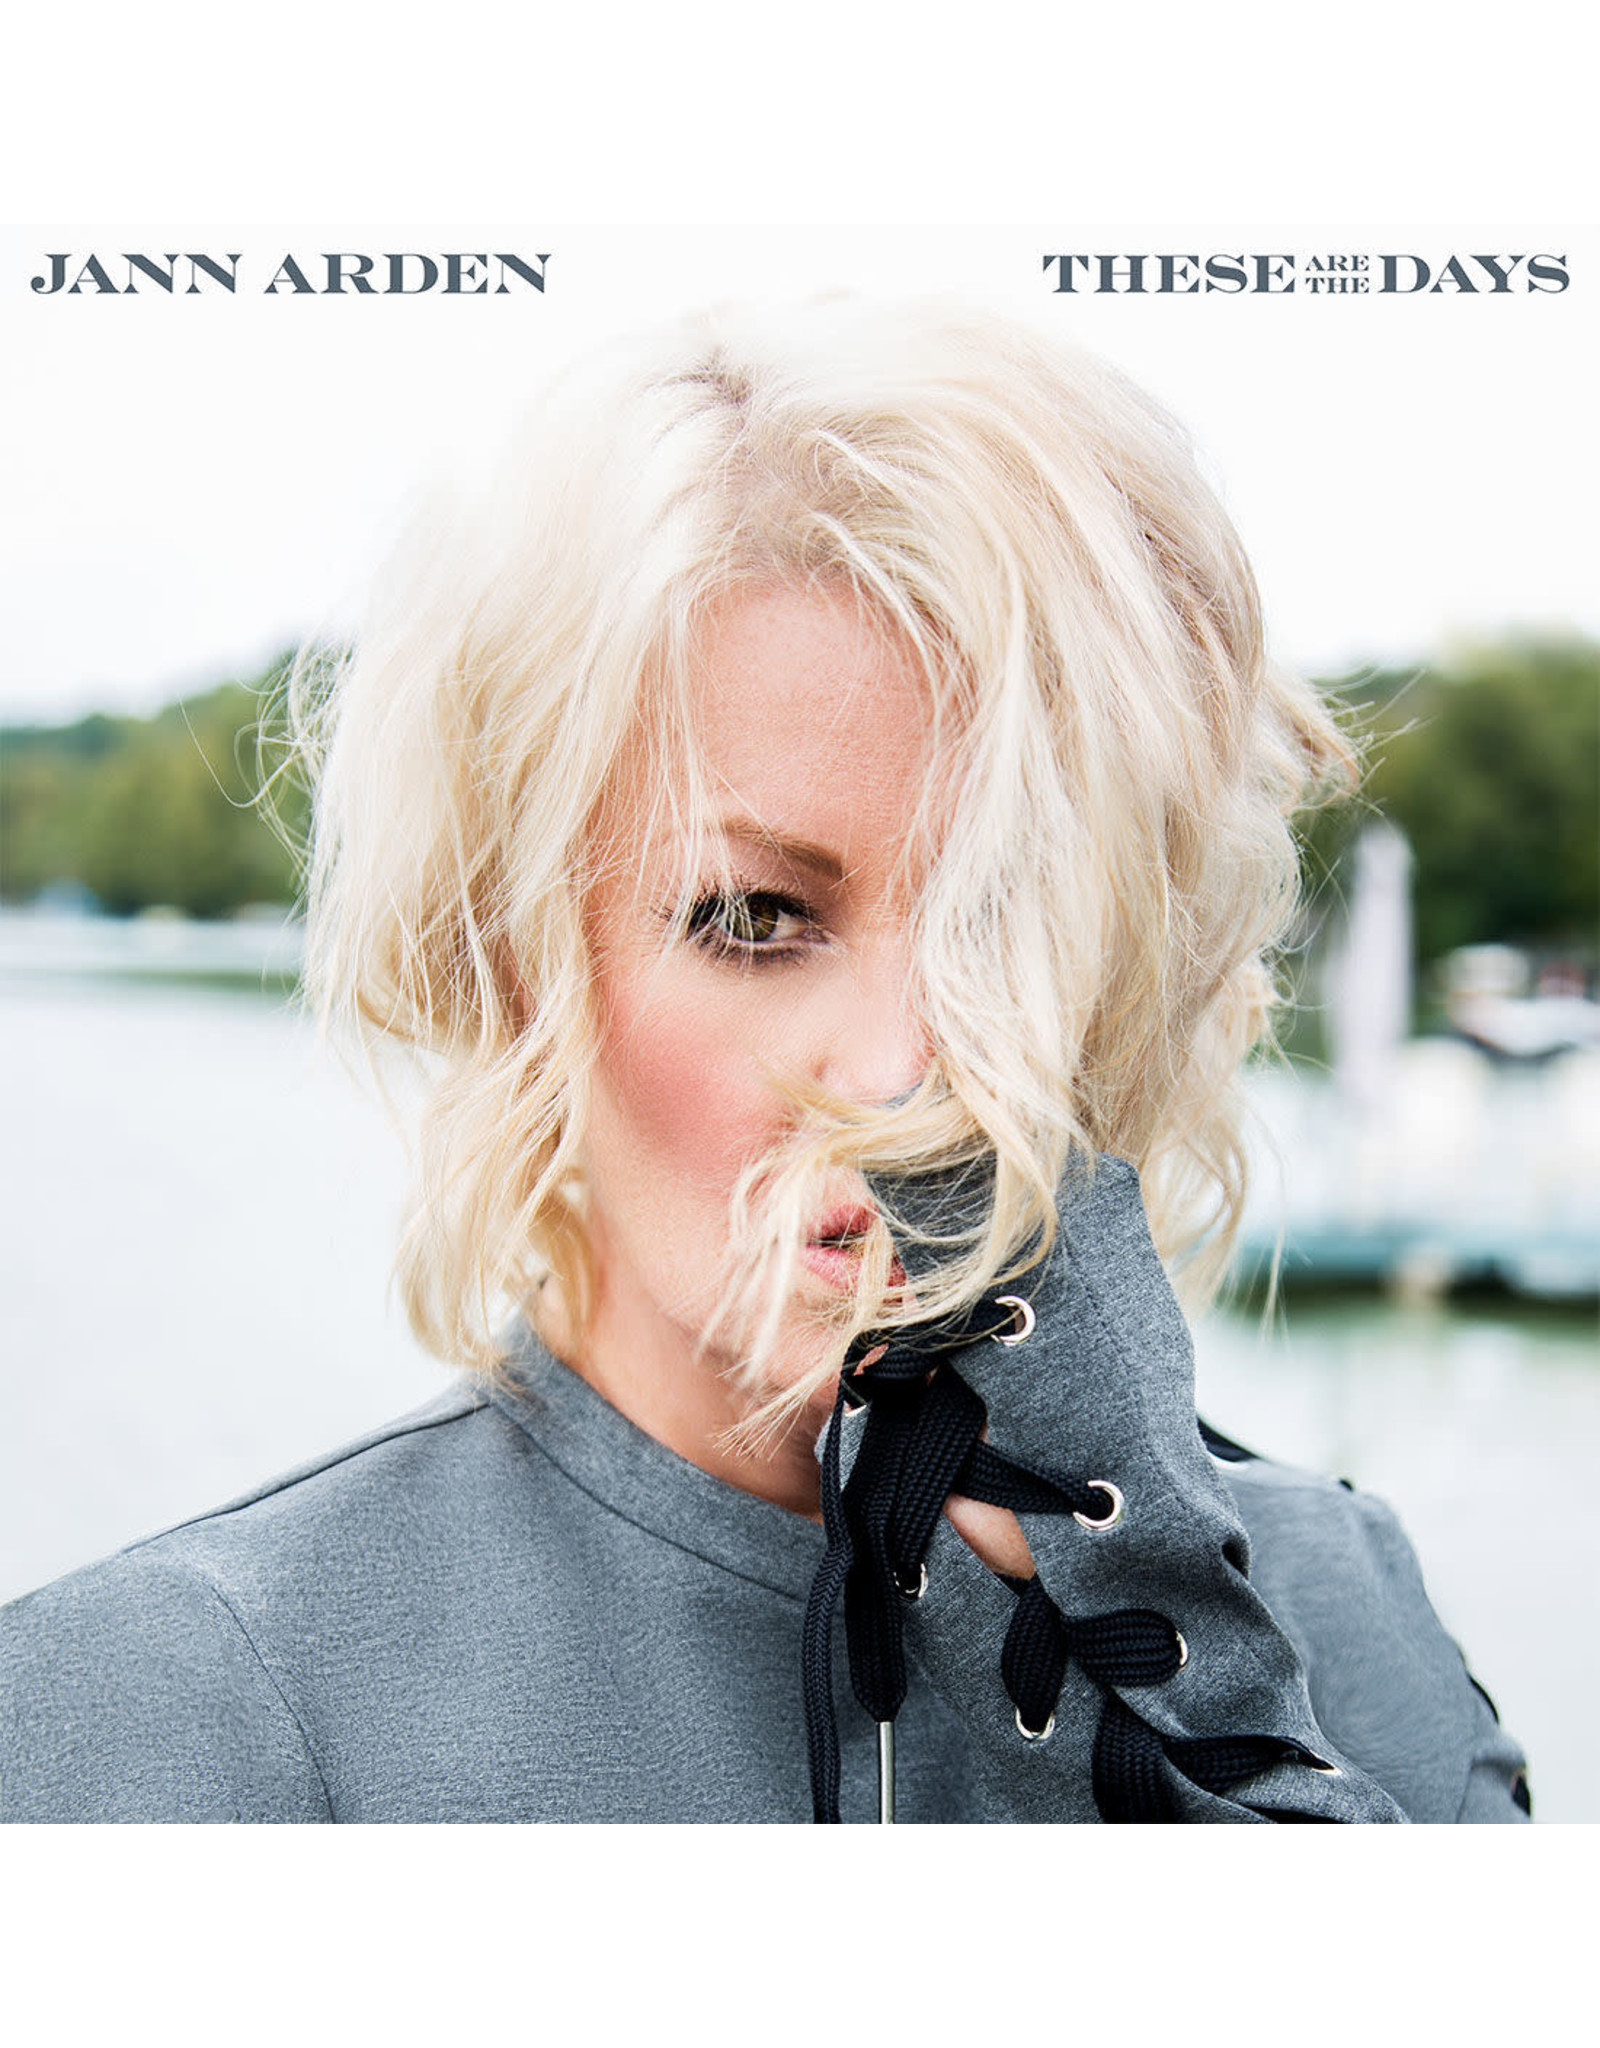 Jann Arden - These Are The Days